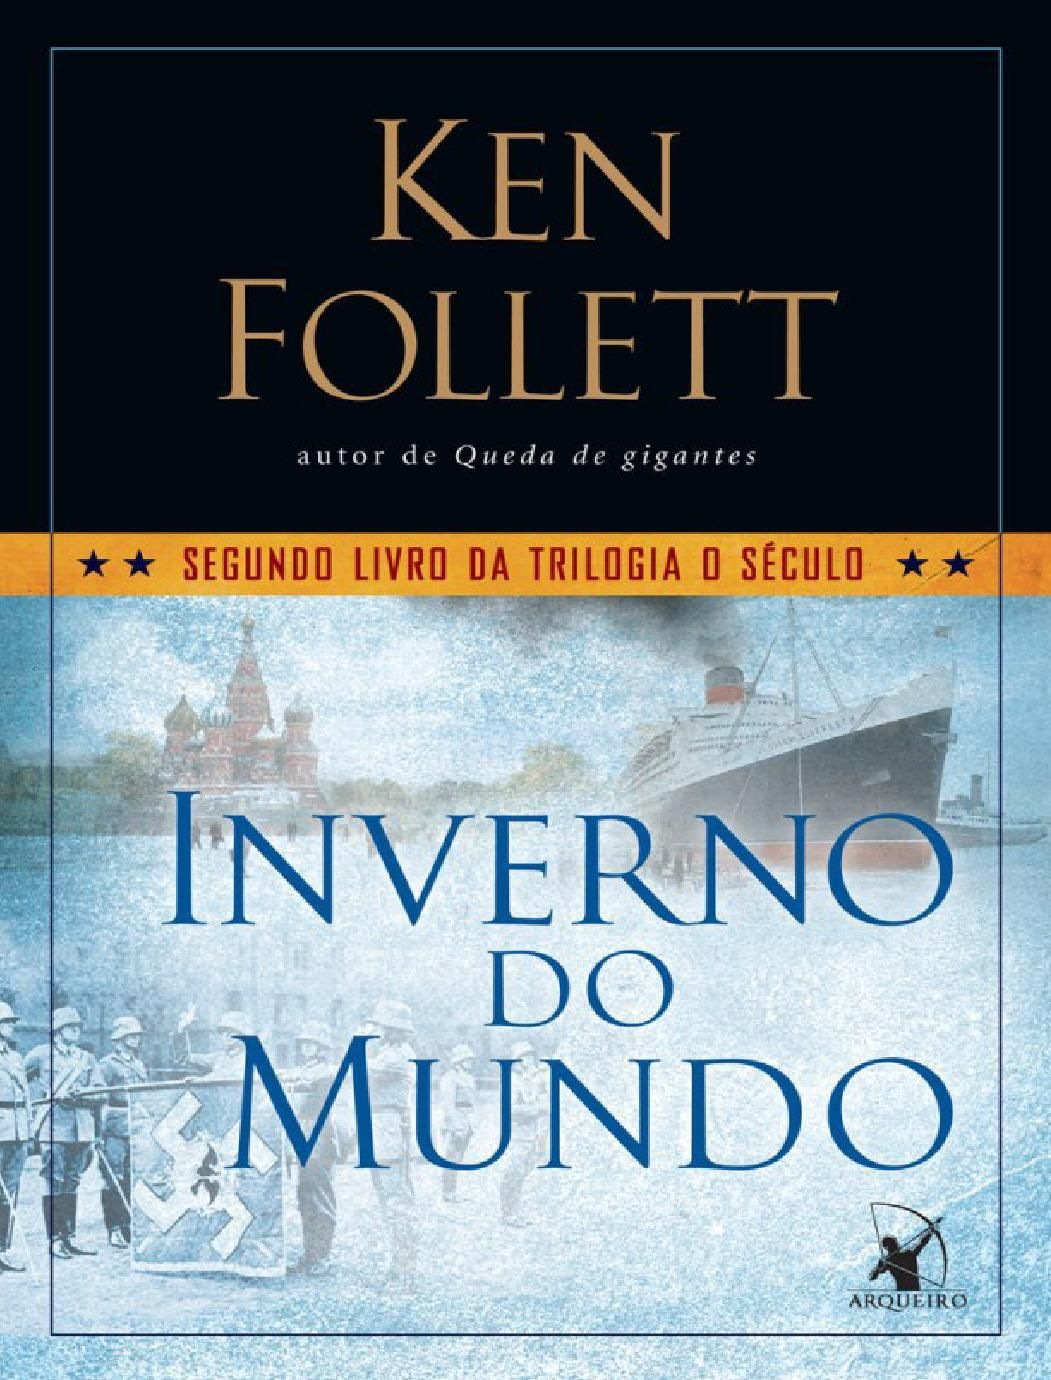 Ken Follett Trilogia Do Seculo 02 Inverno Do Mundo Part1